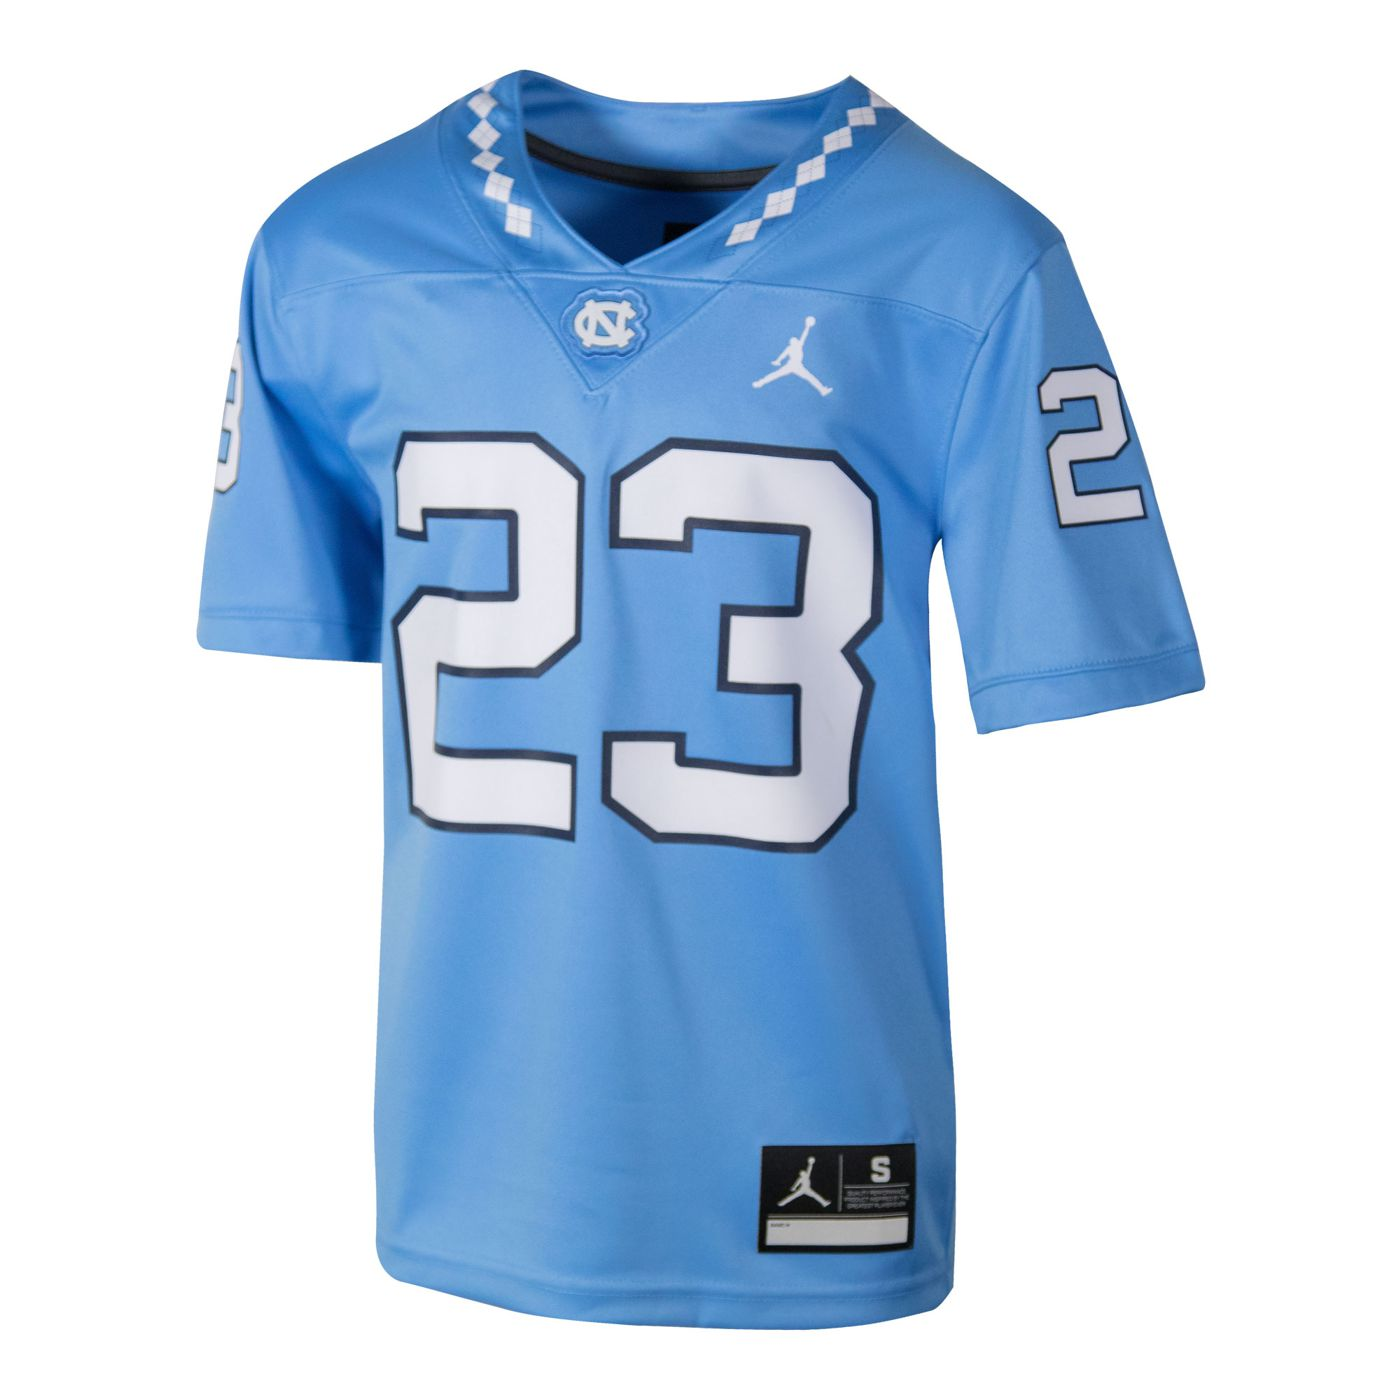 Johnny T-shirt - North Carolina Tar Heels - Youth  23 Game Replica Jumpman Football  Jersey (CB) by Nike 2430077b7